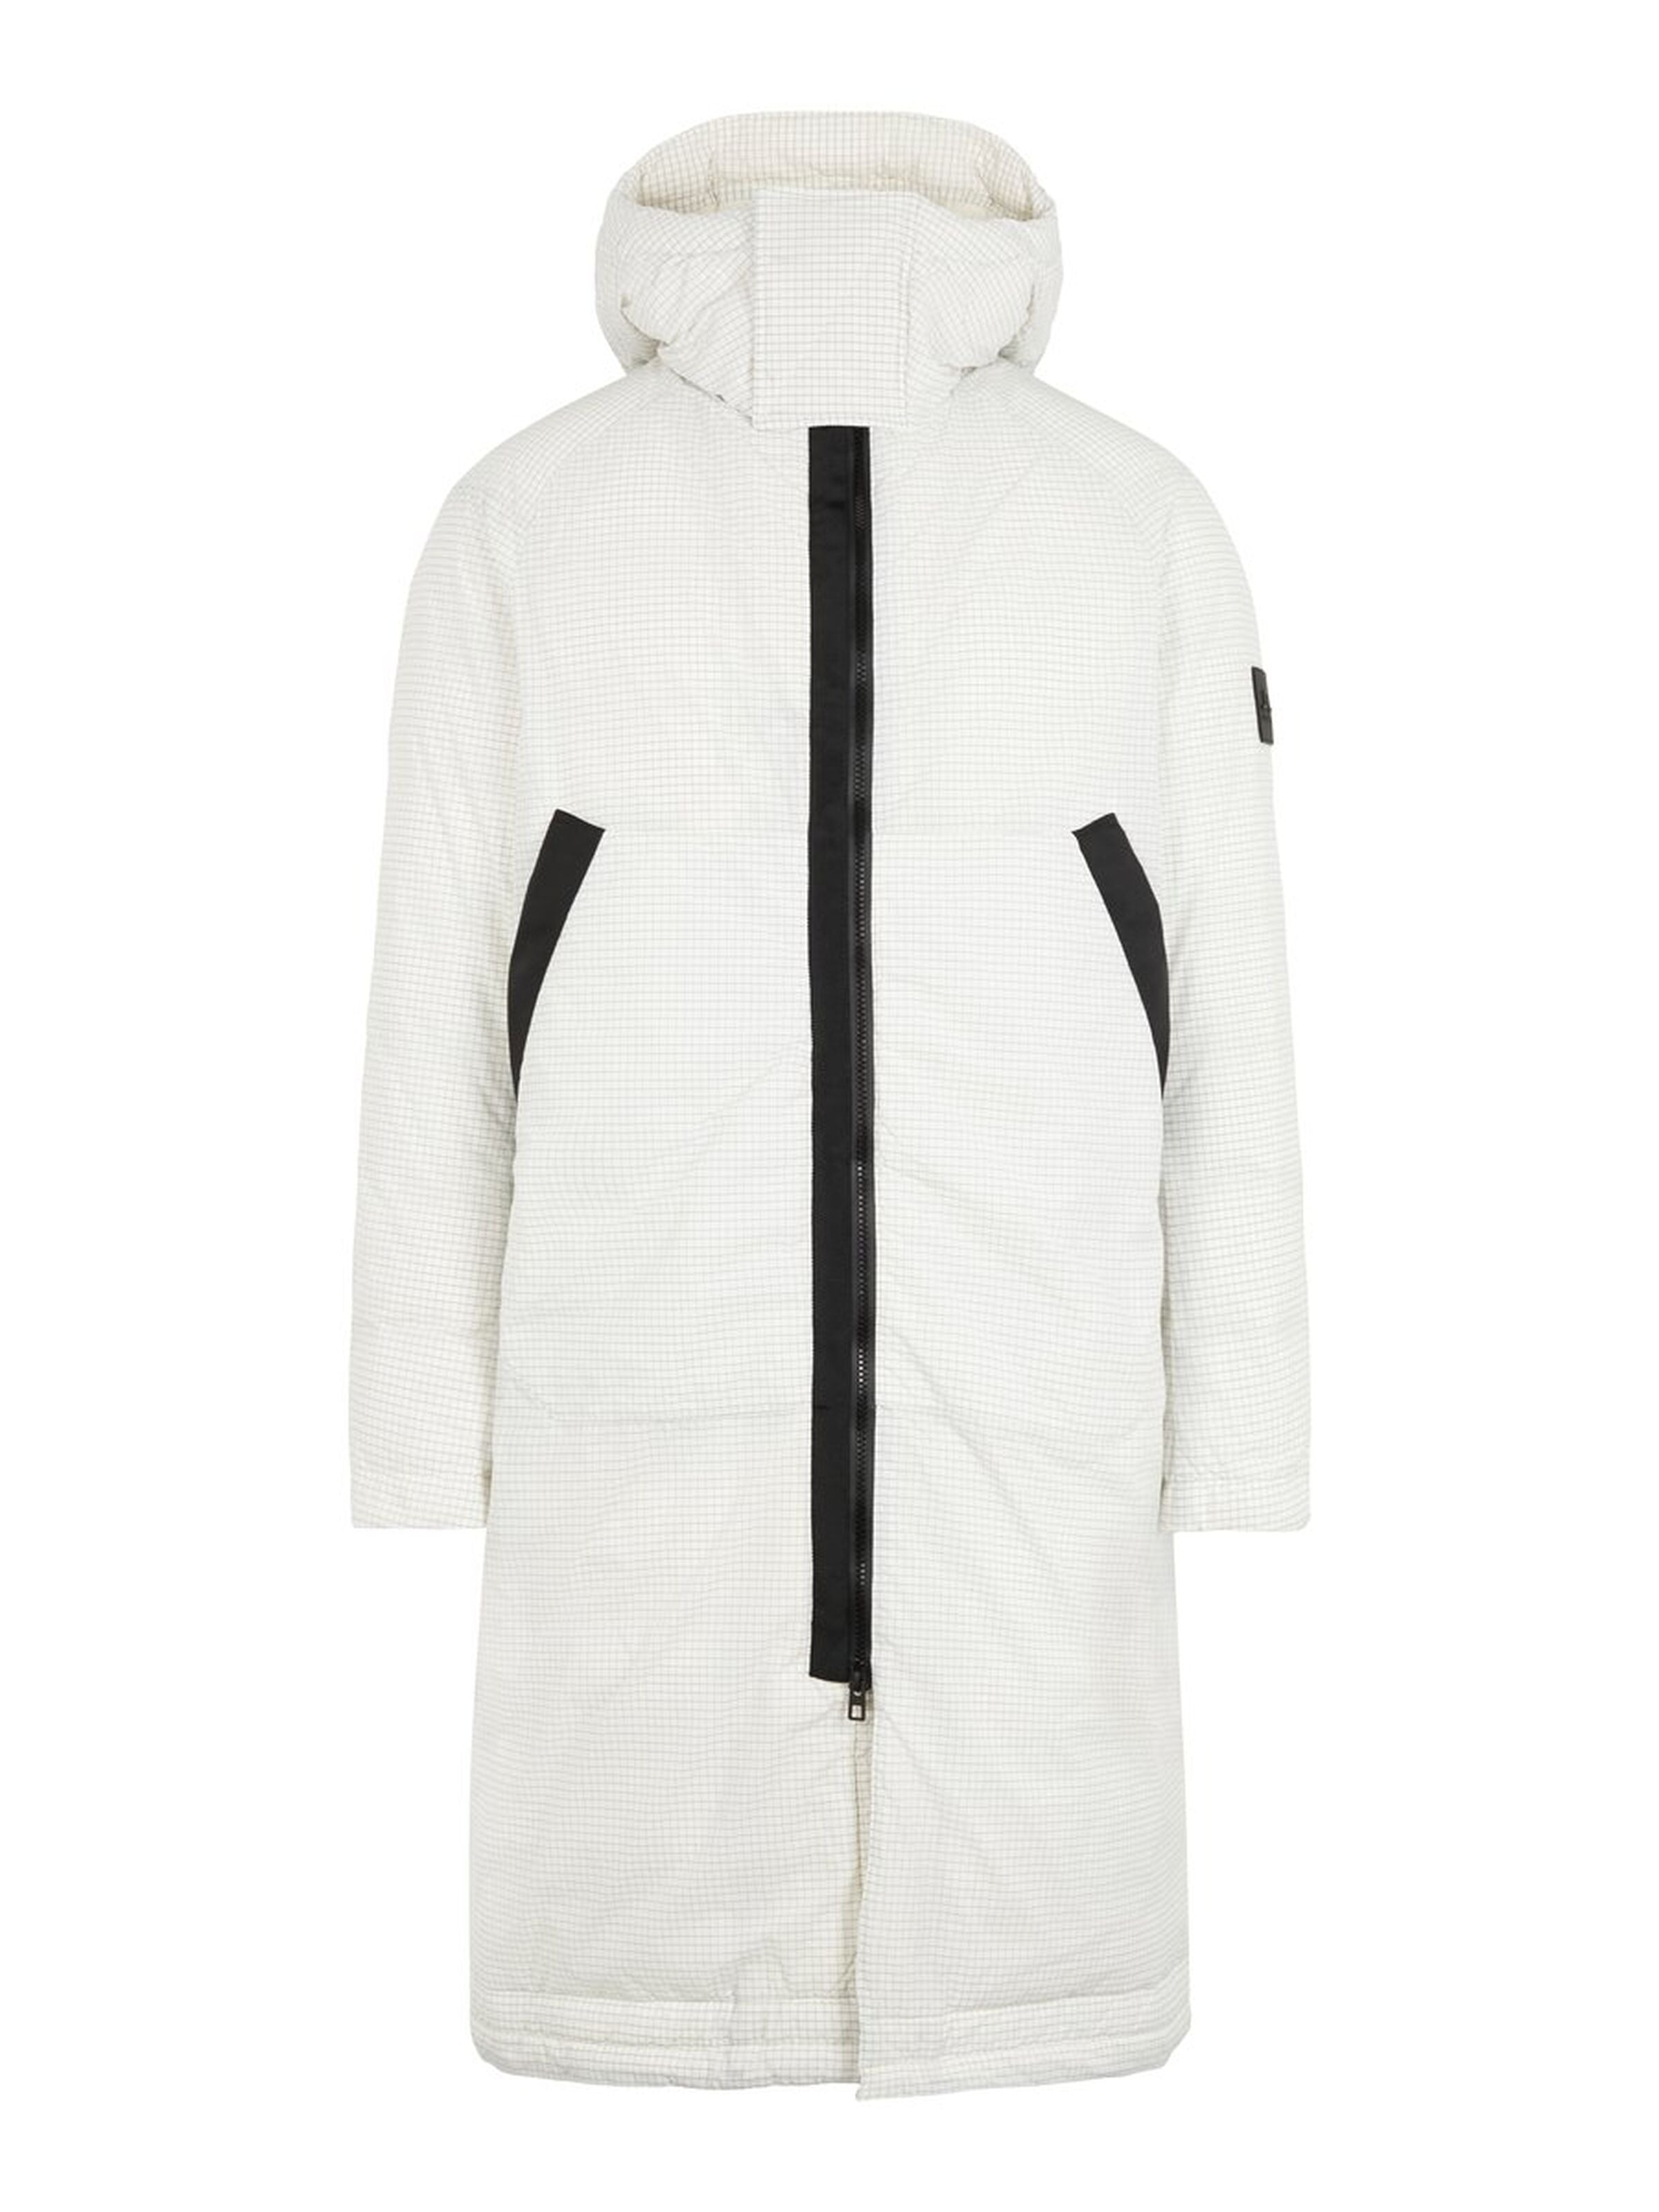 J. Lindeberg Long Winter Coat Parka